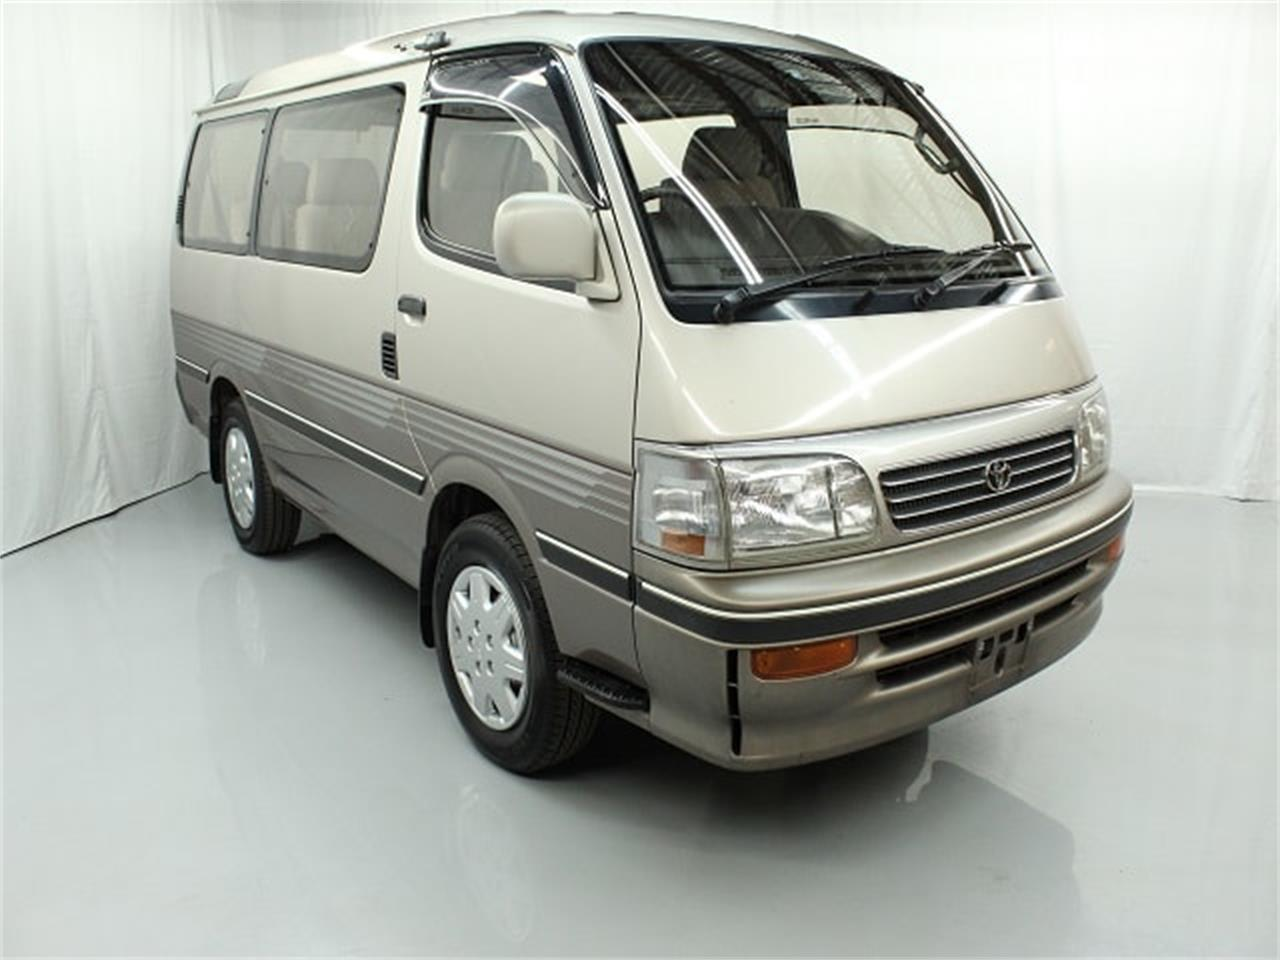 For Sale: 1993 Toyota HiAce in Christiansburg, Virginia